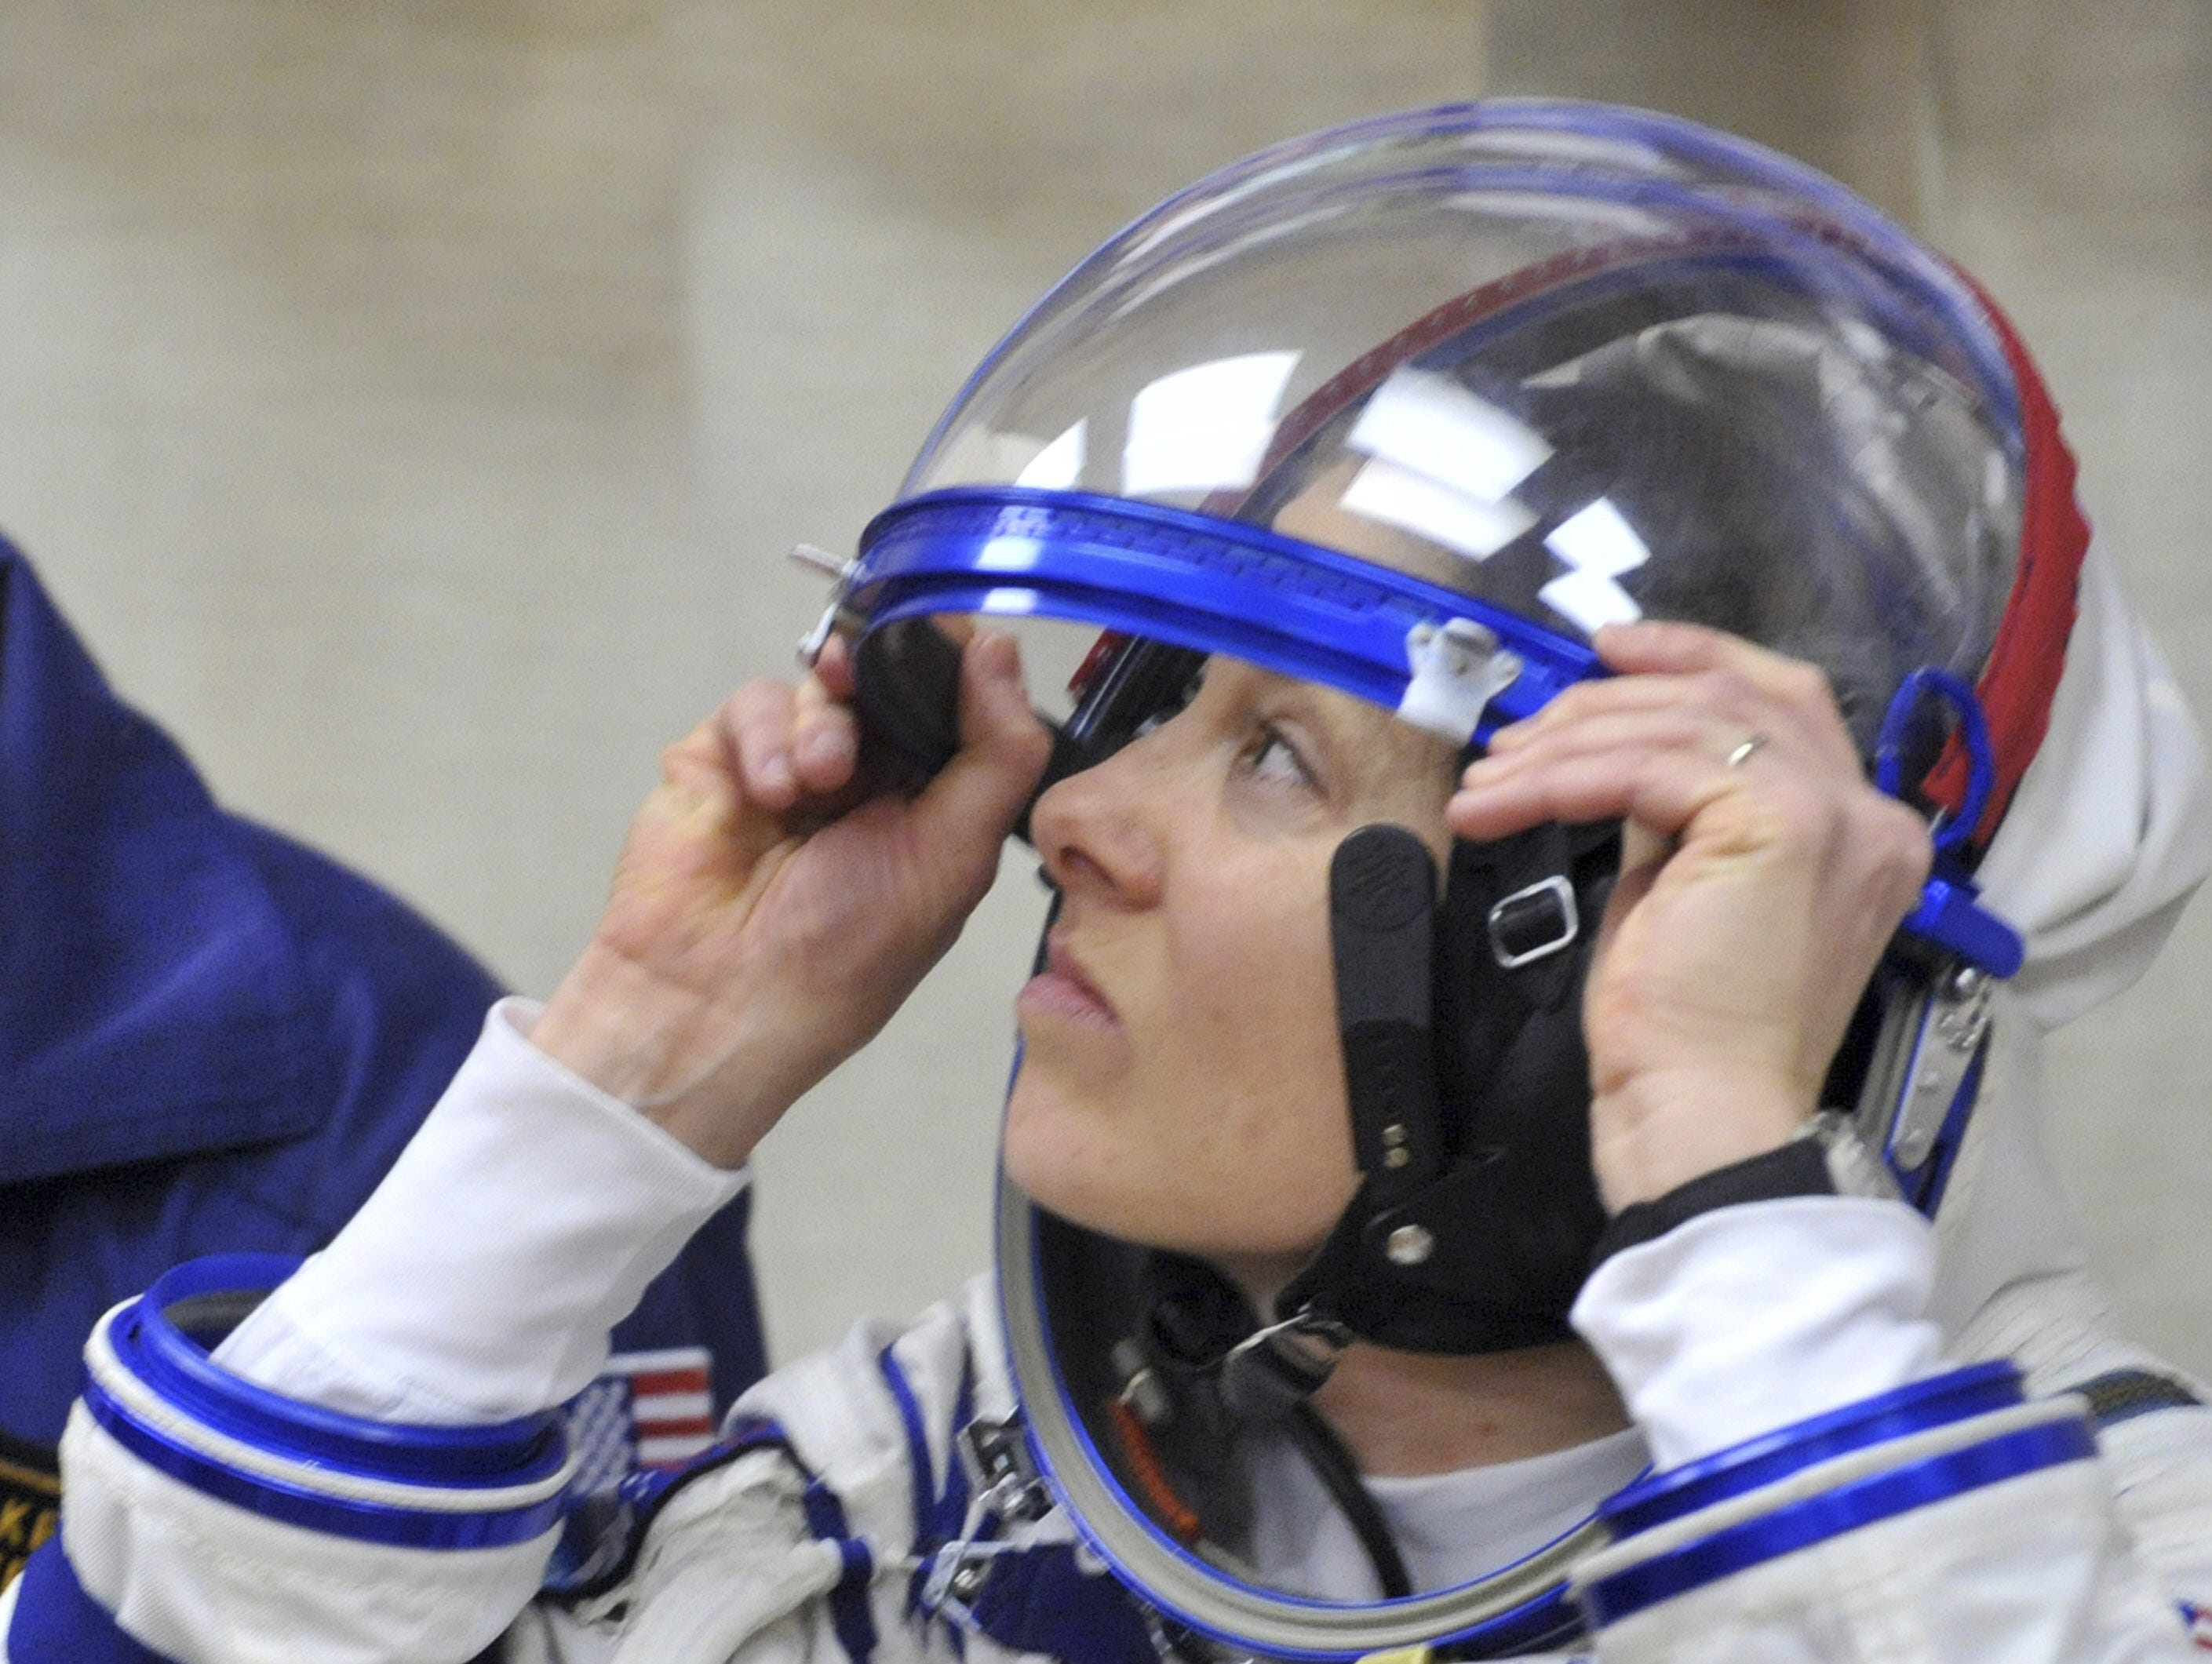 Astronaut Tracy Caldwell Dyson adjusts her helmet while getting into her space suit at Kazakhstan's Russian-leased